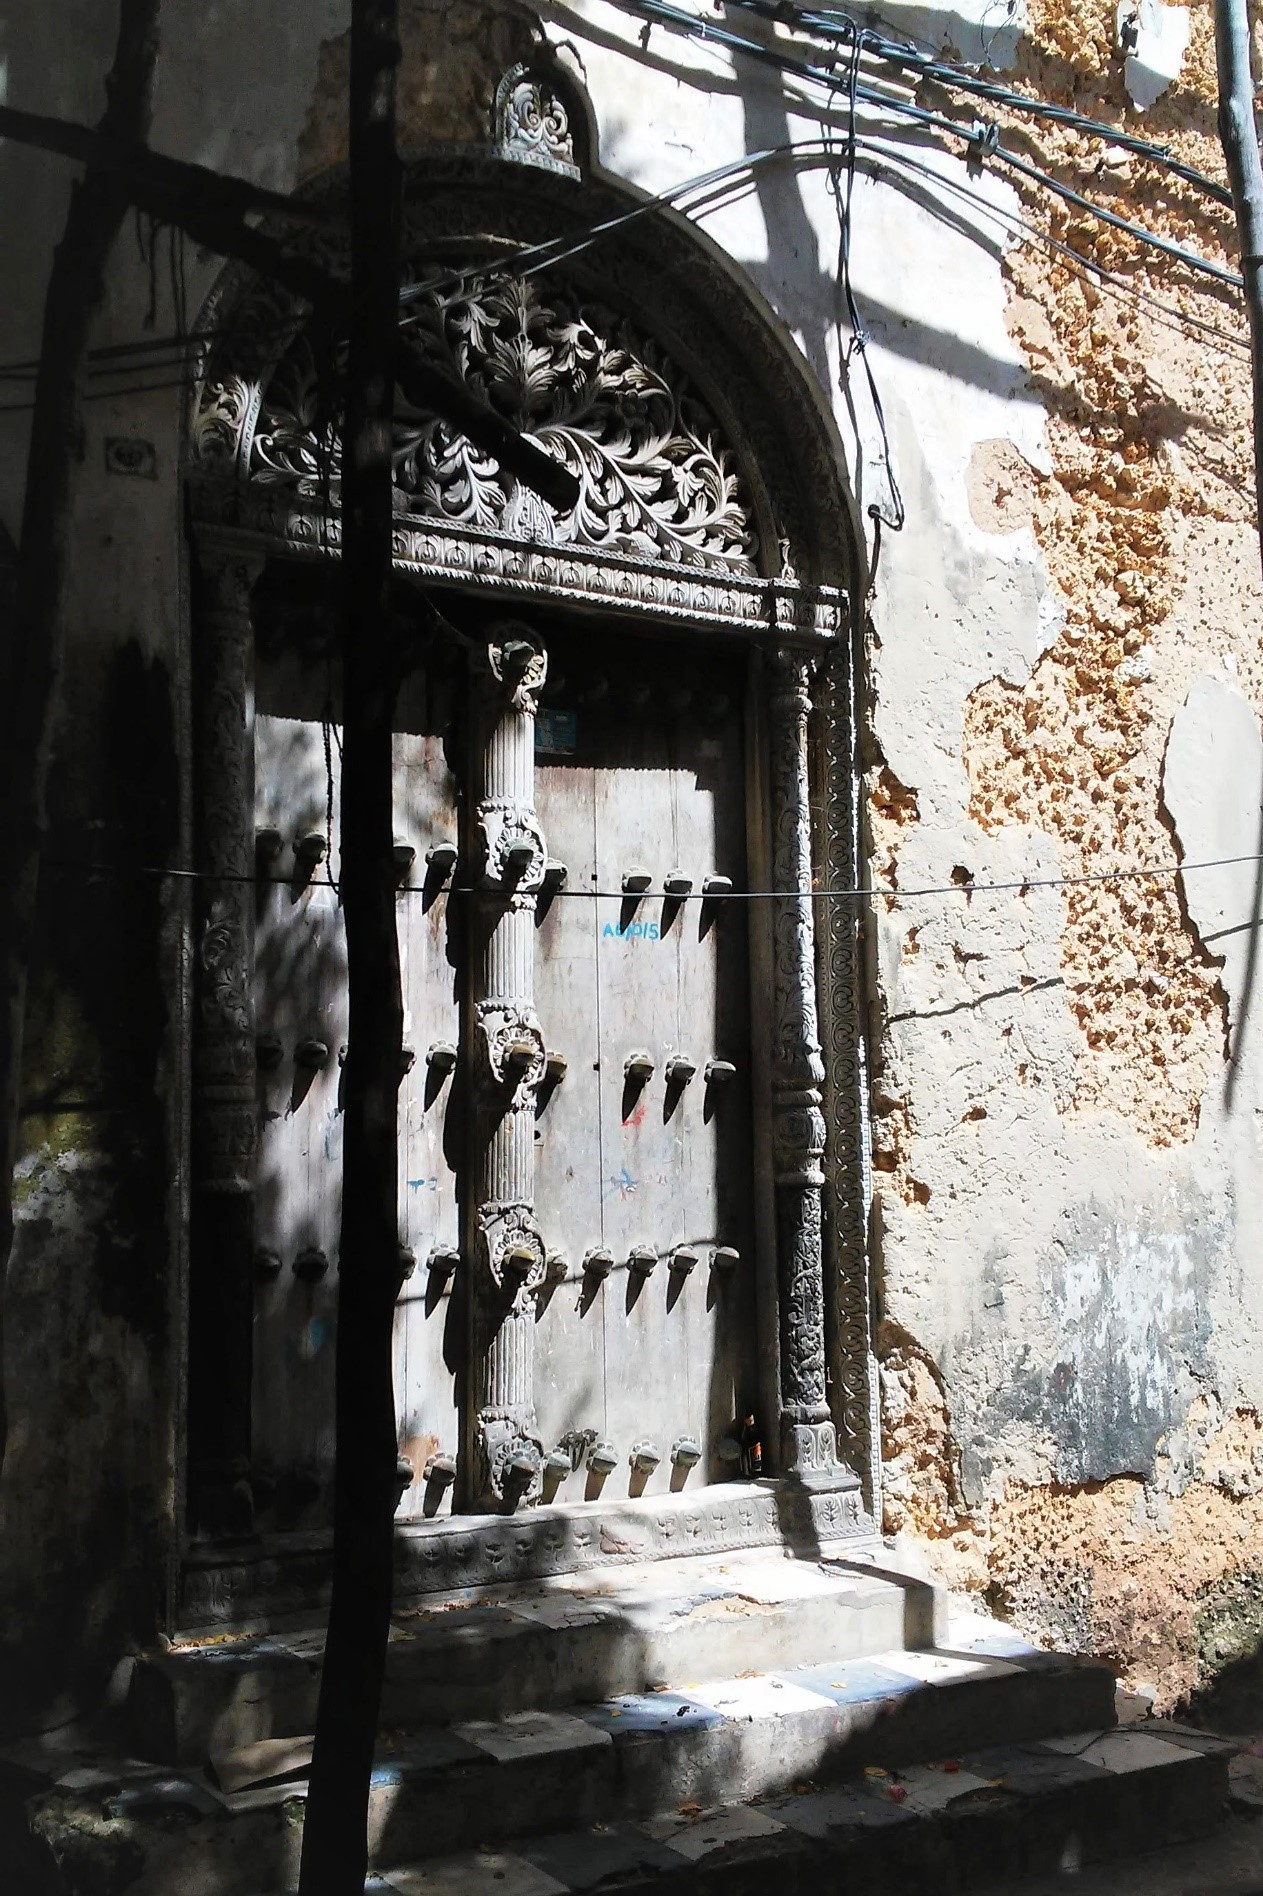 Tipu Tip House Door, World Heritage Site, Stone Town, Zanzibar